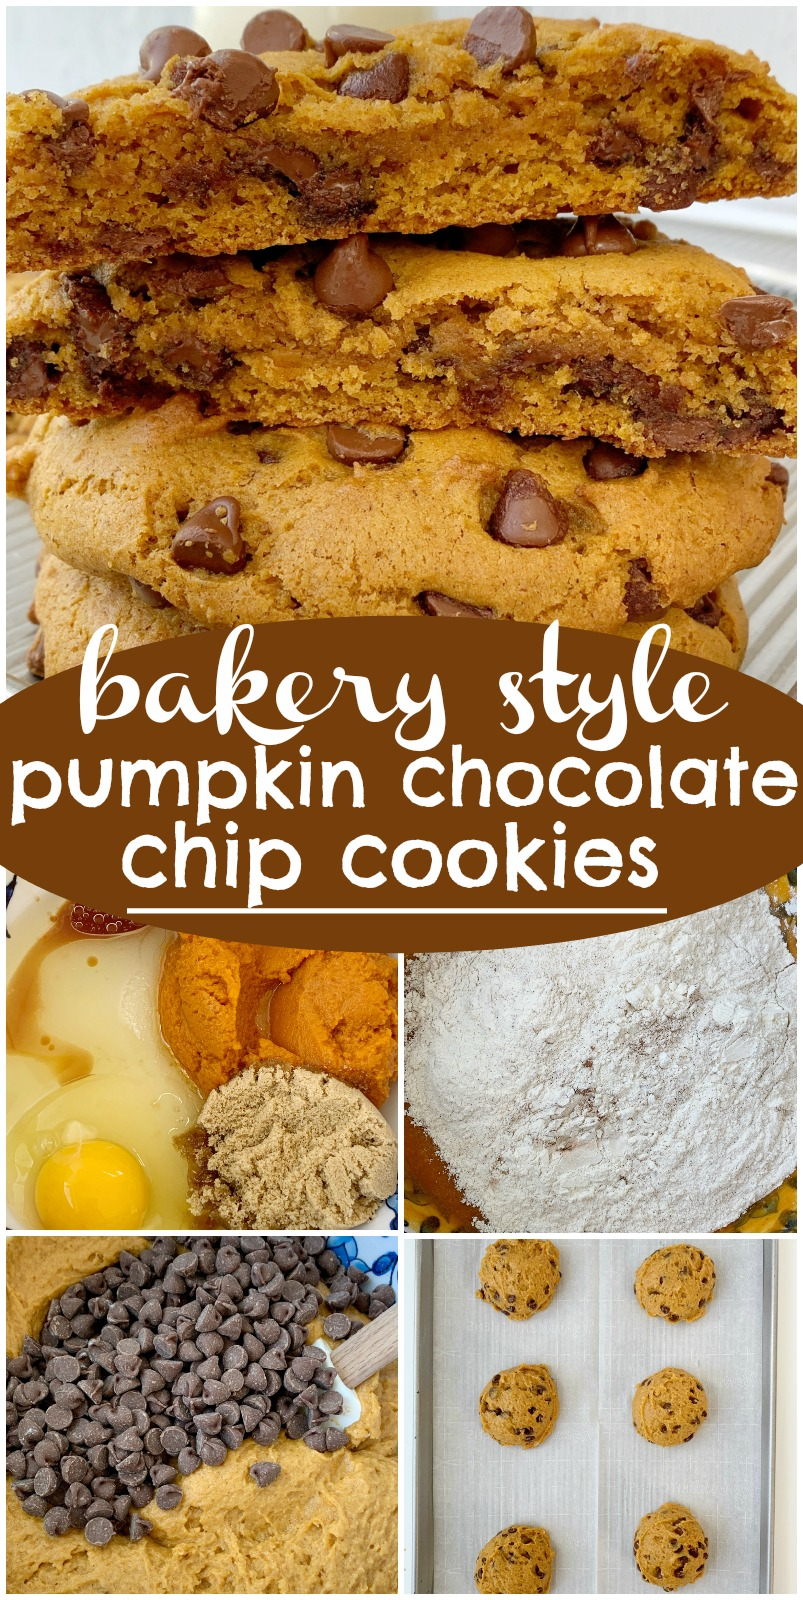 Bakery Style Pumpkin Chocolate Chip Cookies | Soft, cakey Pumpkin Chocolate Chip Cookies | Pumpkin Chocolate Chip Cookies just like you find at a bakery! Big cookies that are soft-baked, loaded with milk chocolate chips, and all the warm pumpkin spices. #pumpkincookies #pumpkinrecipes #pumpkinchocolatechipcookies #recipeoftheday #fallbaking #pumpkin